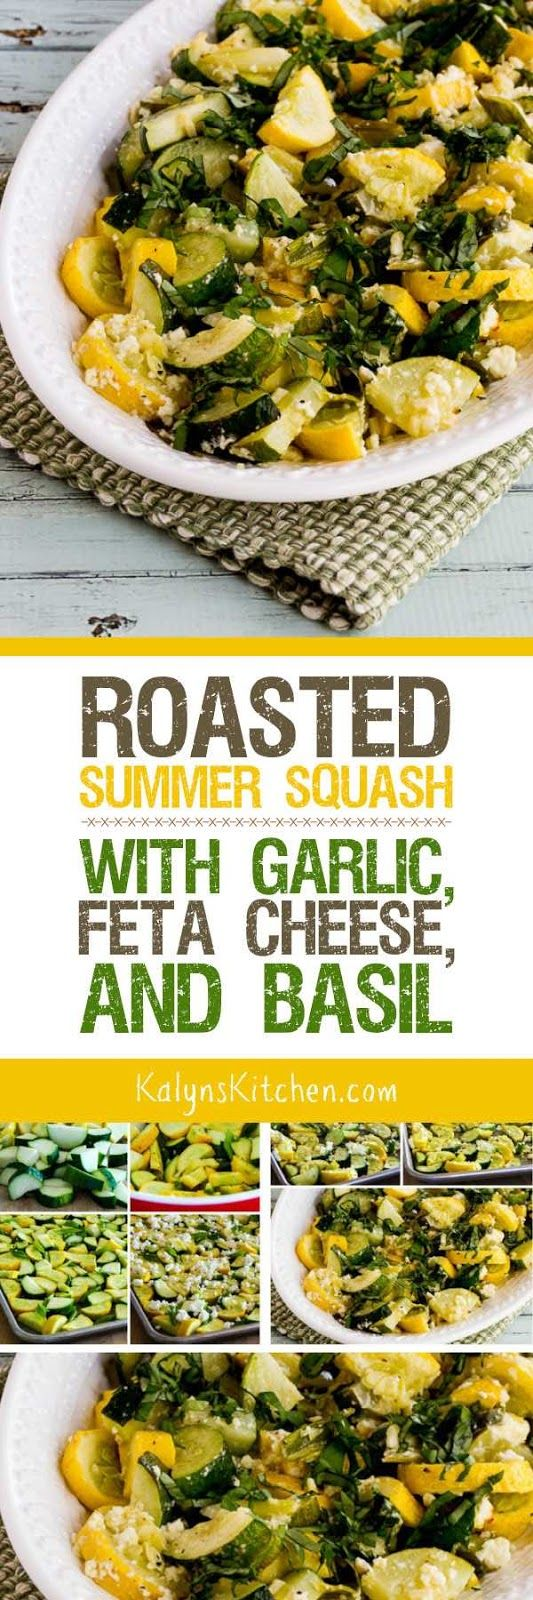 Roasted Summer Squash with Garlic, Feta Cheese, and Basil is delicious and this Meatless Monday dish is low-carb, low-glycemic, gluten-free, and South Beach Diet Phase One.  [found on KalynsKitchen.com]